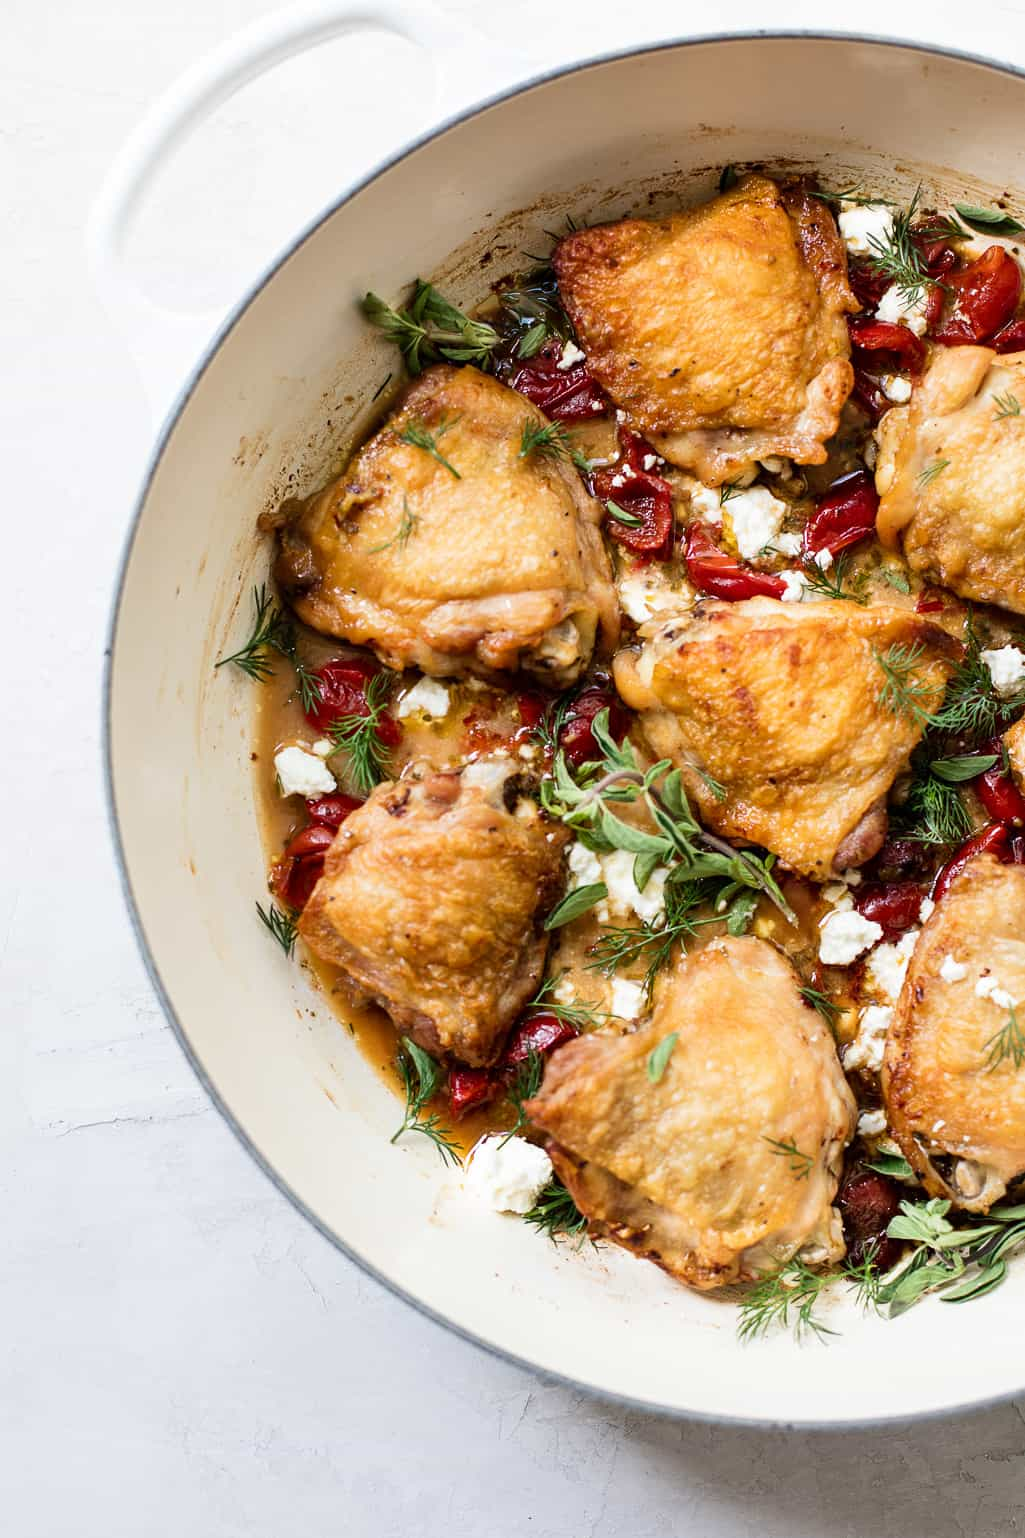 One-pan braised Greek chicken with feta cheese, oregano and sweet red peppers